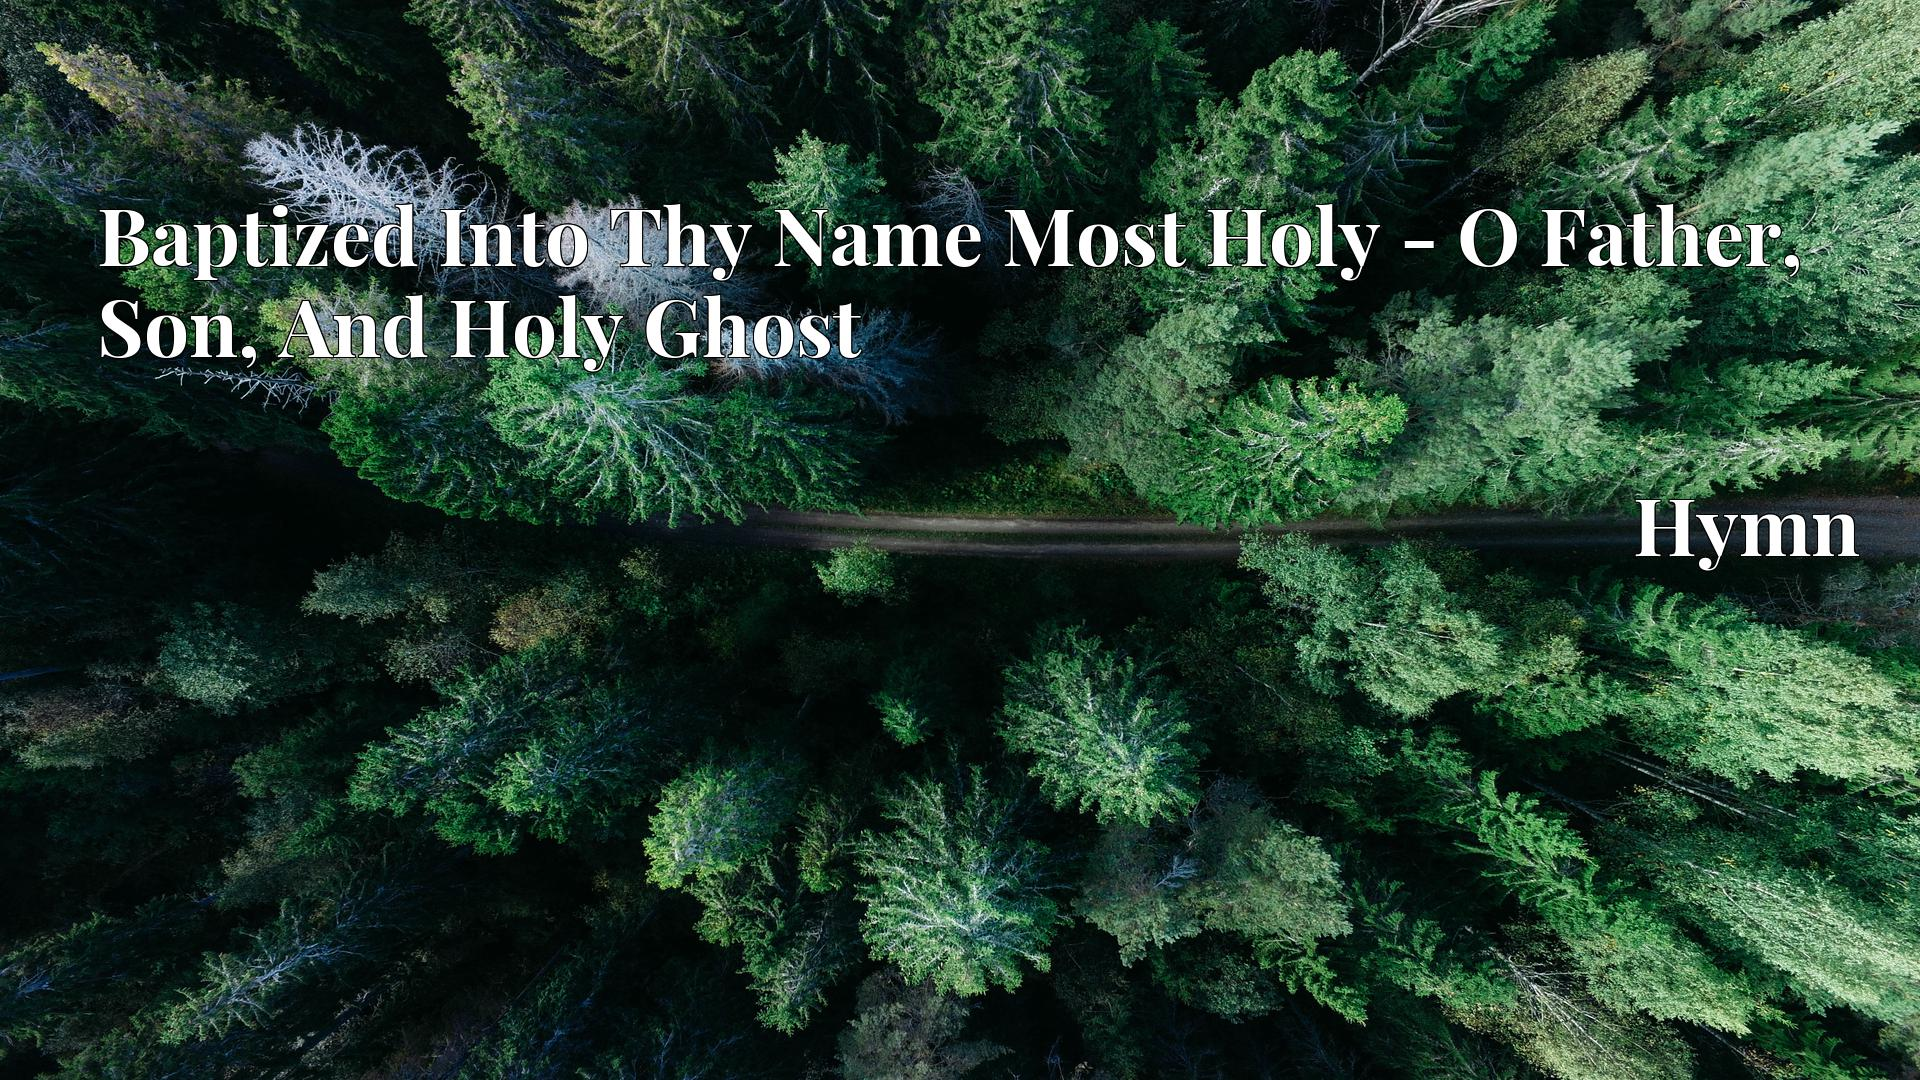 Baptized Into Thy Name Most Holy - O Father, Son, And Holy Ghost - Hymn